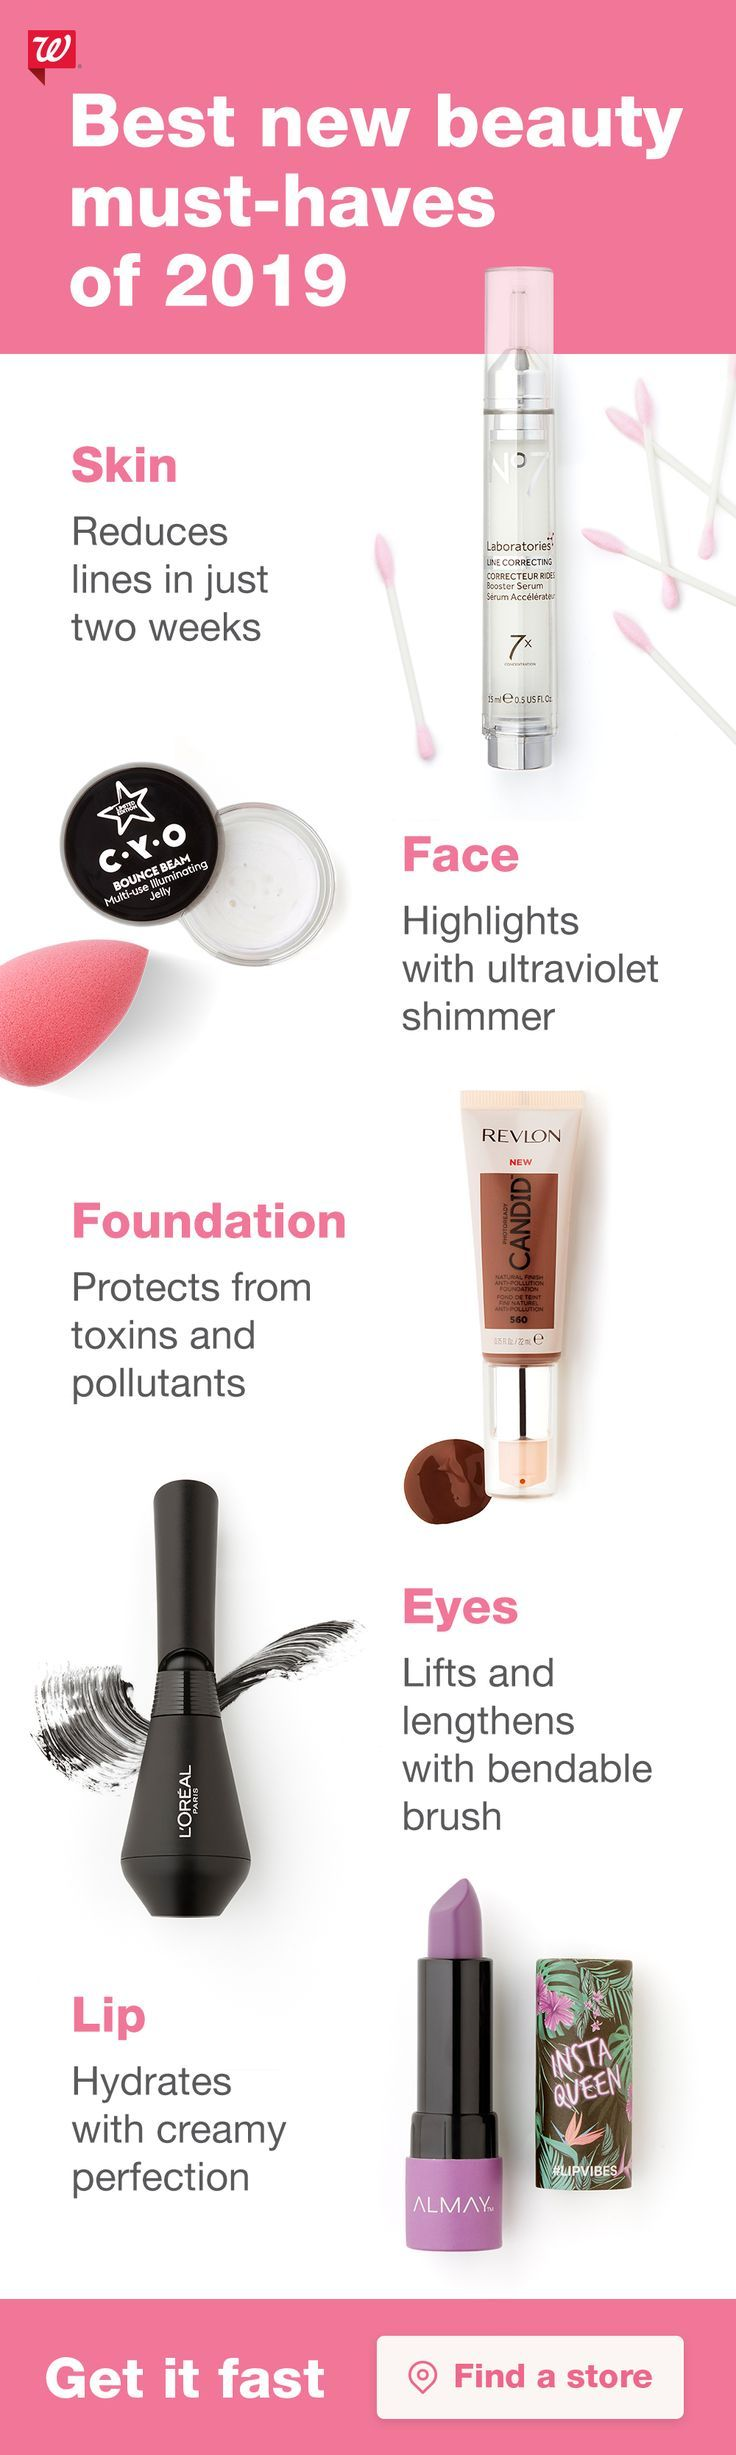 The best new beauty musthaves are here! Our Beauty